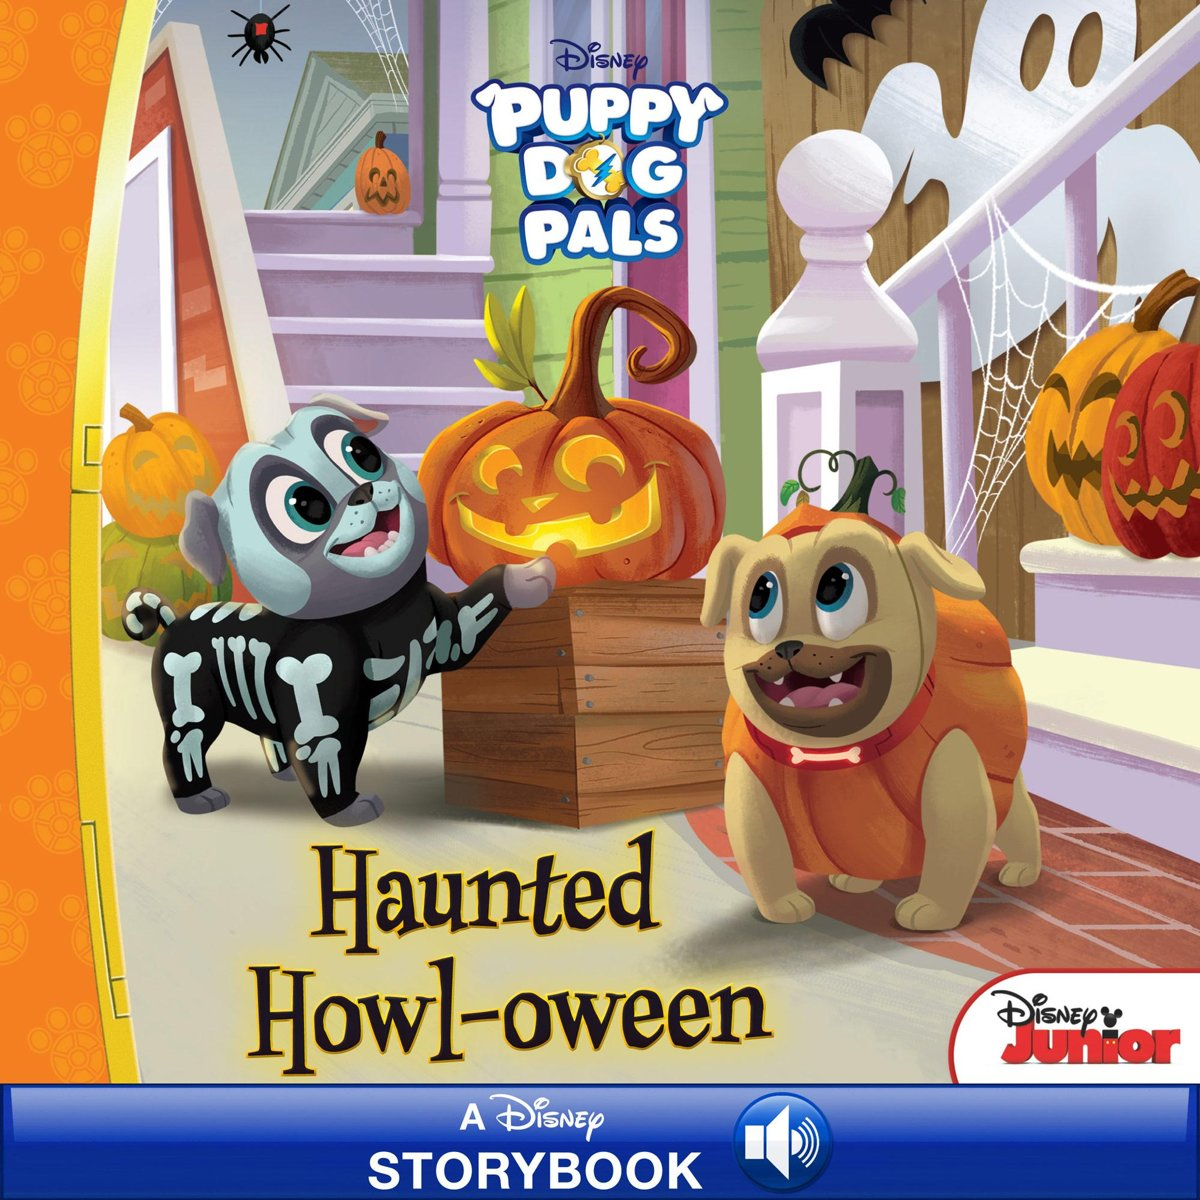 Puppy Dog Pals: Haunted Howl-oween